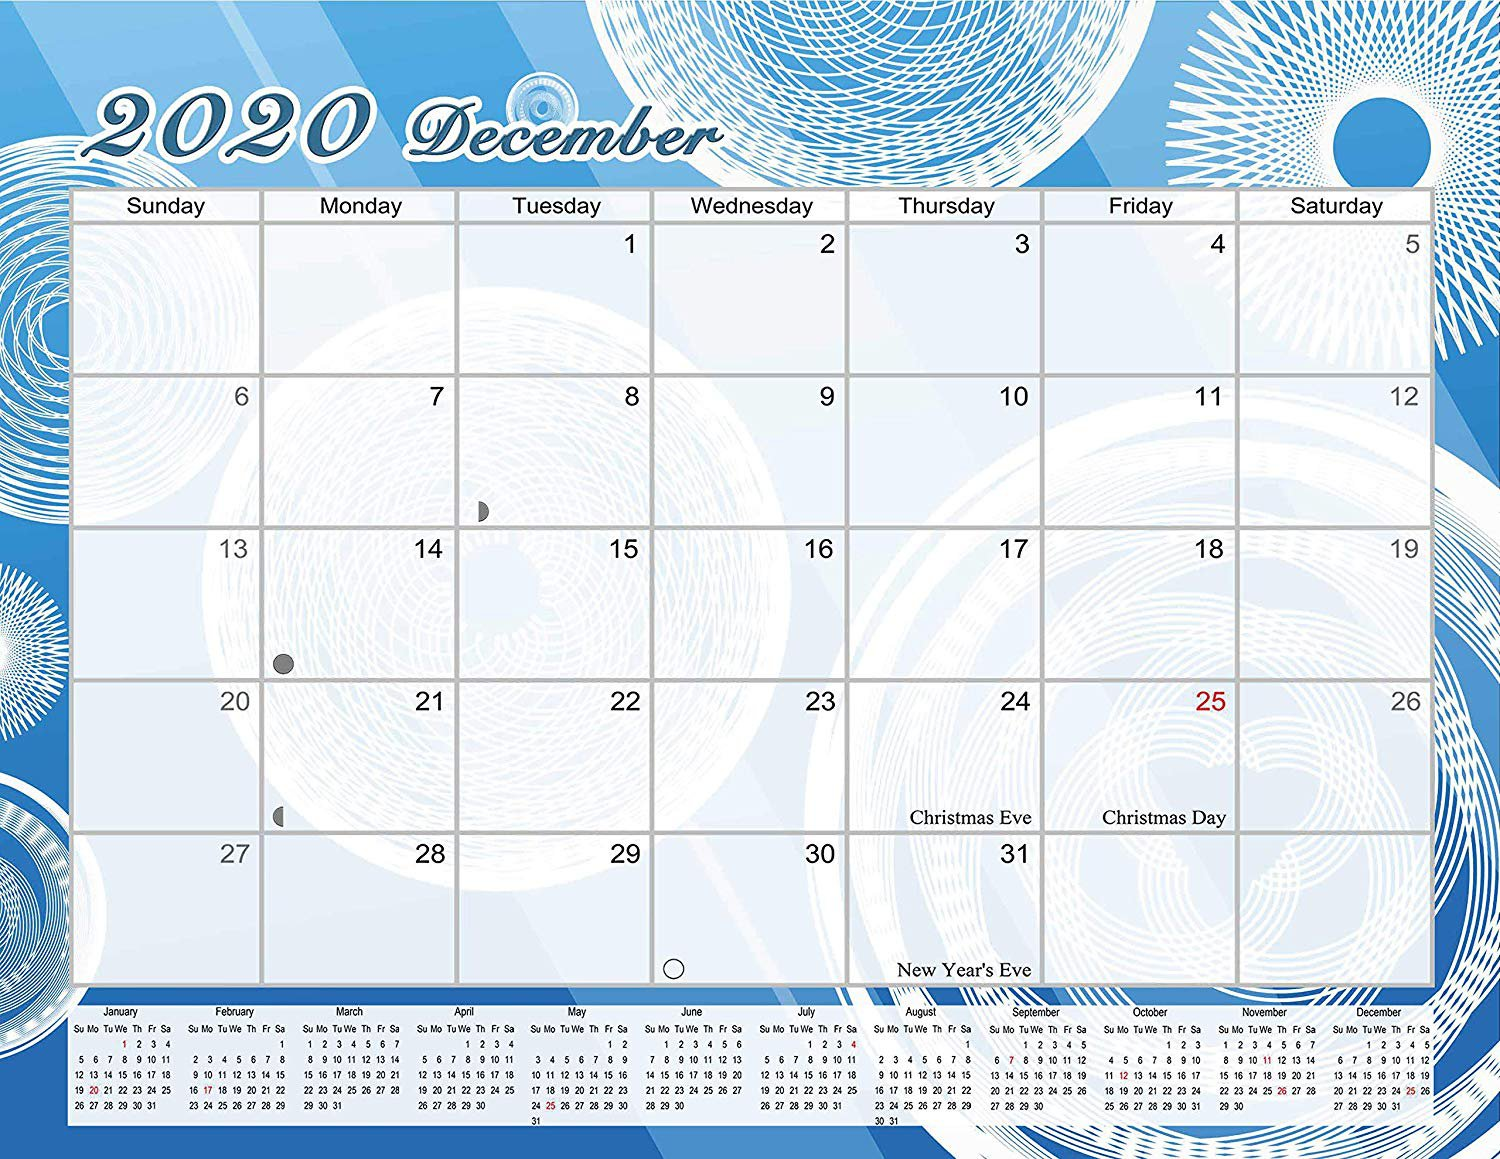 2020 Monthly Magnetic/Desk Calendar - 12 Months Desktop/Wall Calendar/Planner - (Edition #08)